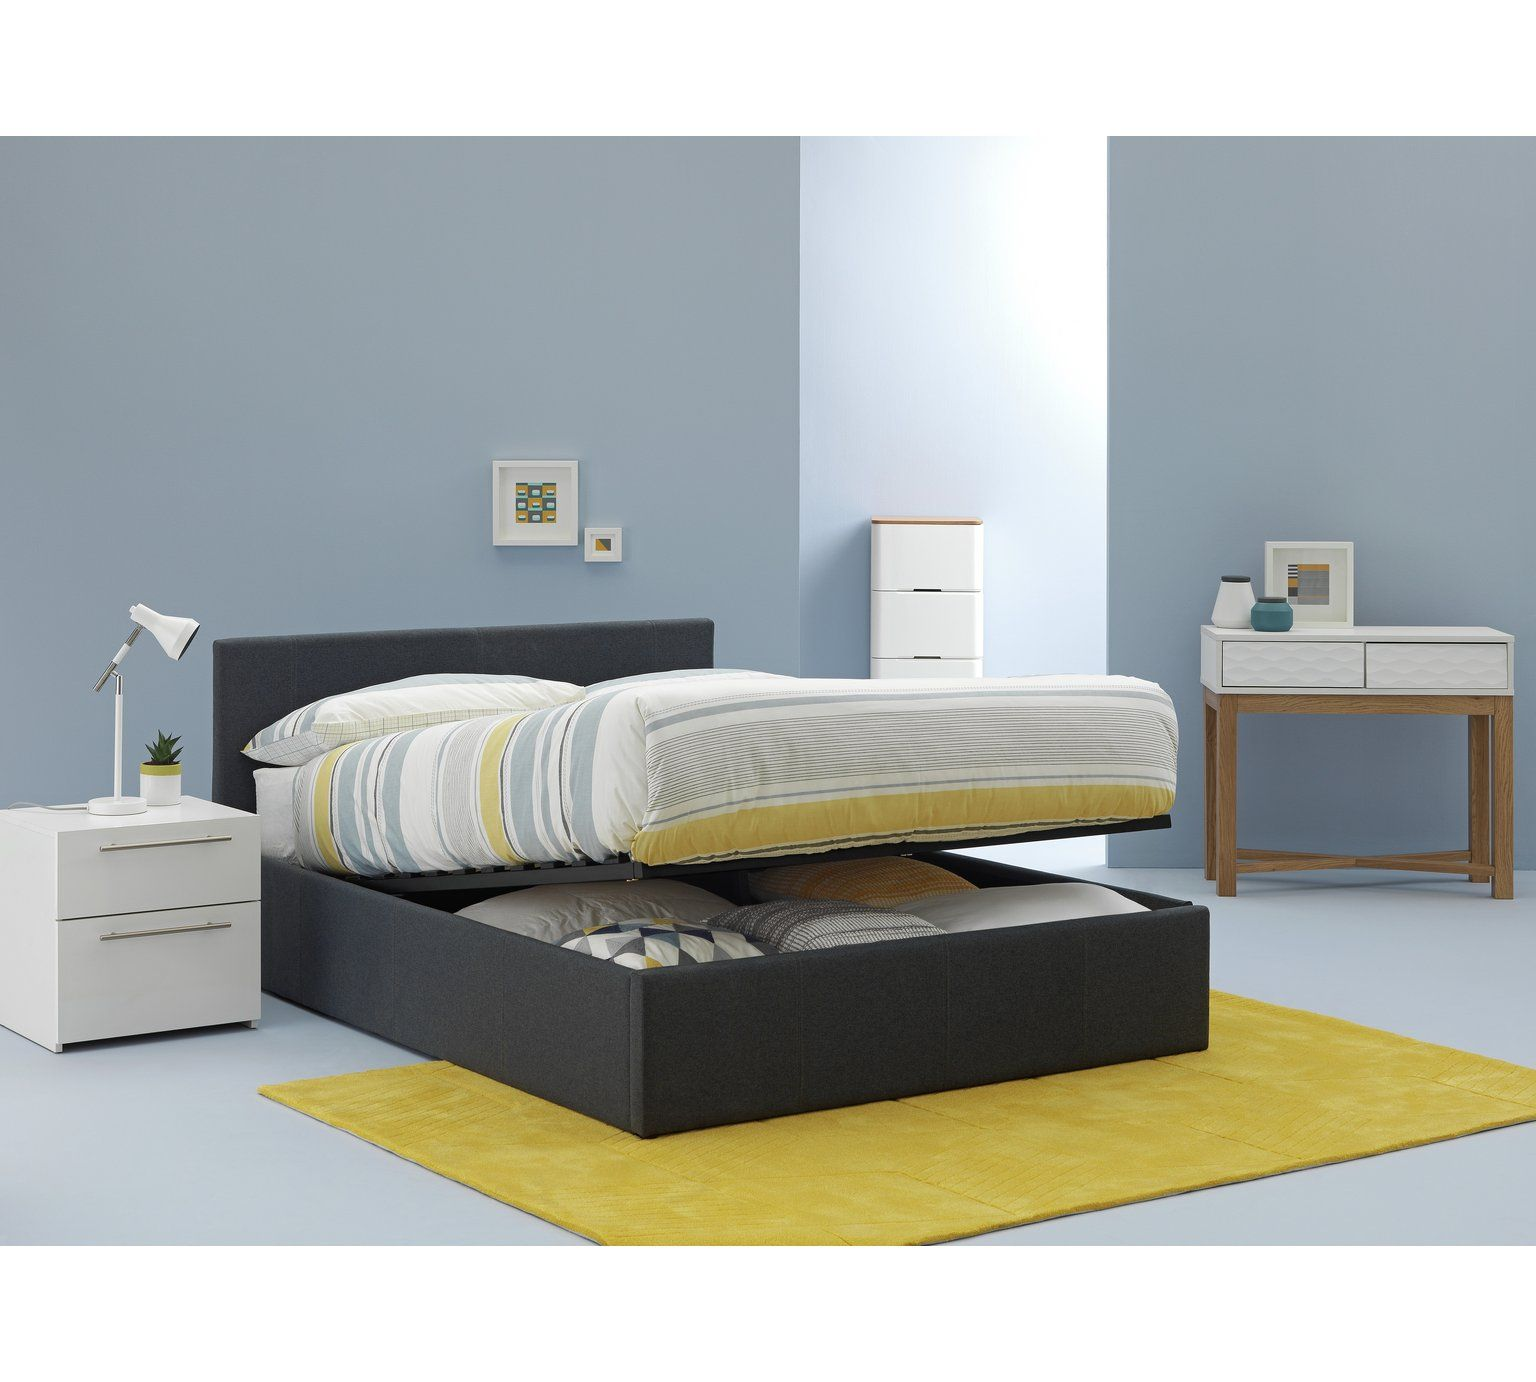 Wondrous Buy Hygena Lavendon Kingsize Fabric Ottoman Bed Frame Grey Gmtry Best Dining Table And Chair Ideas Images Gmtryco